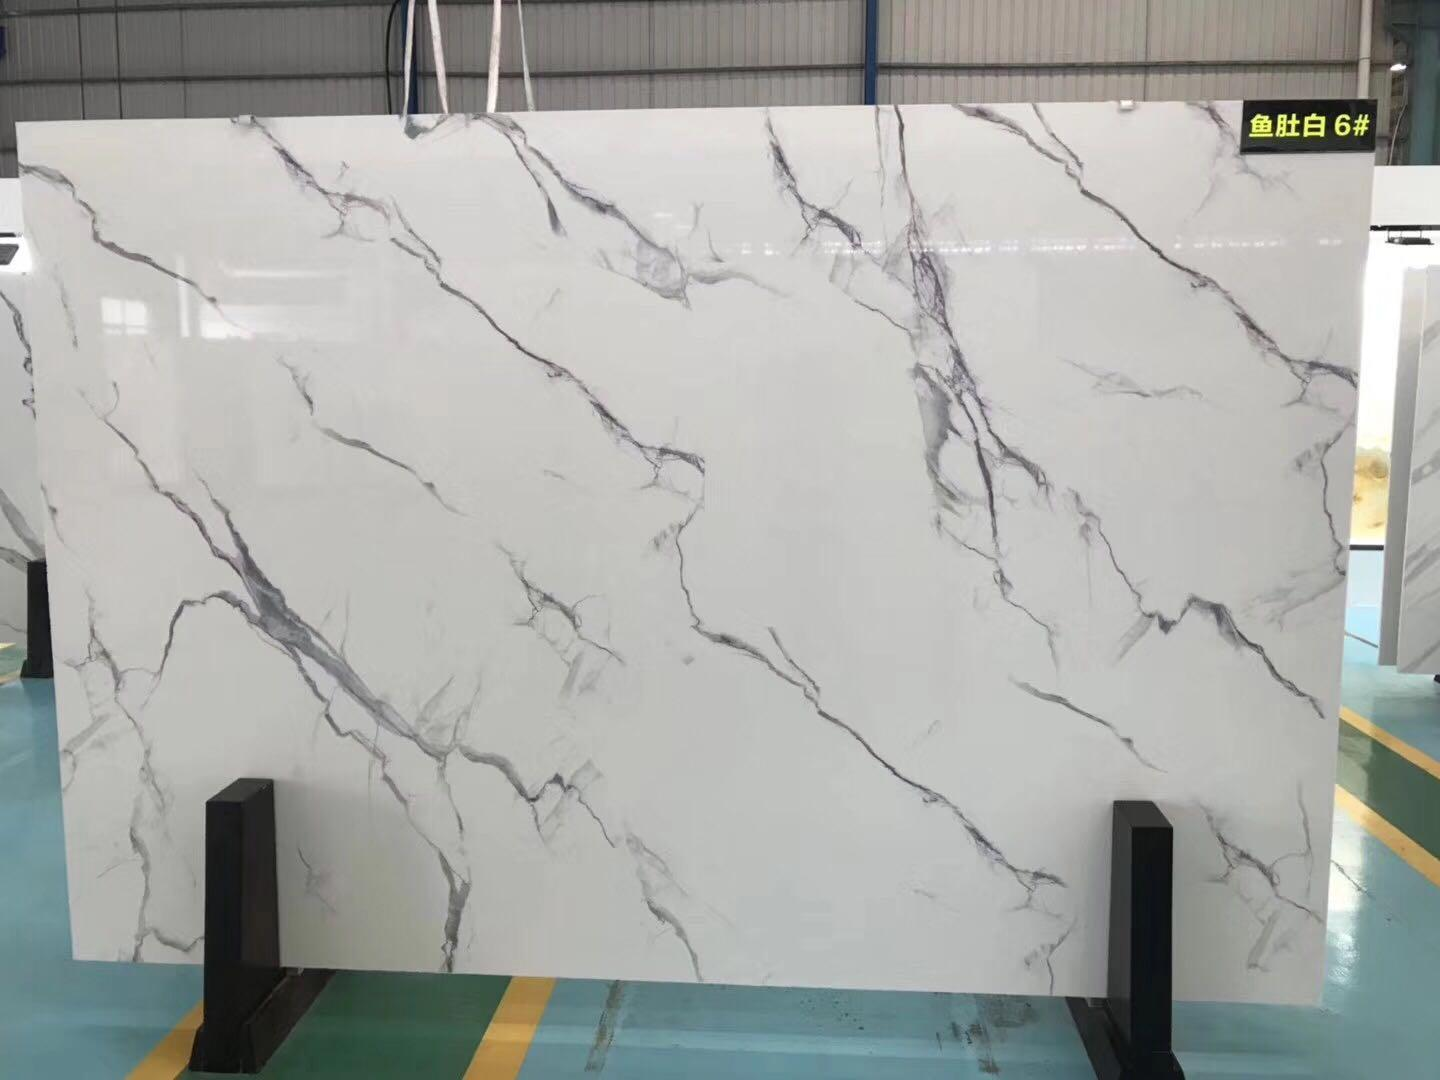 marble stone 3D print artificial marble slabs 4